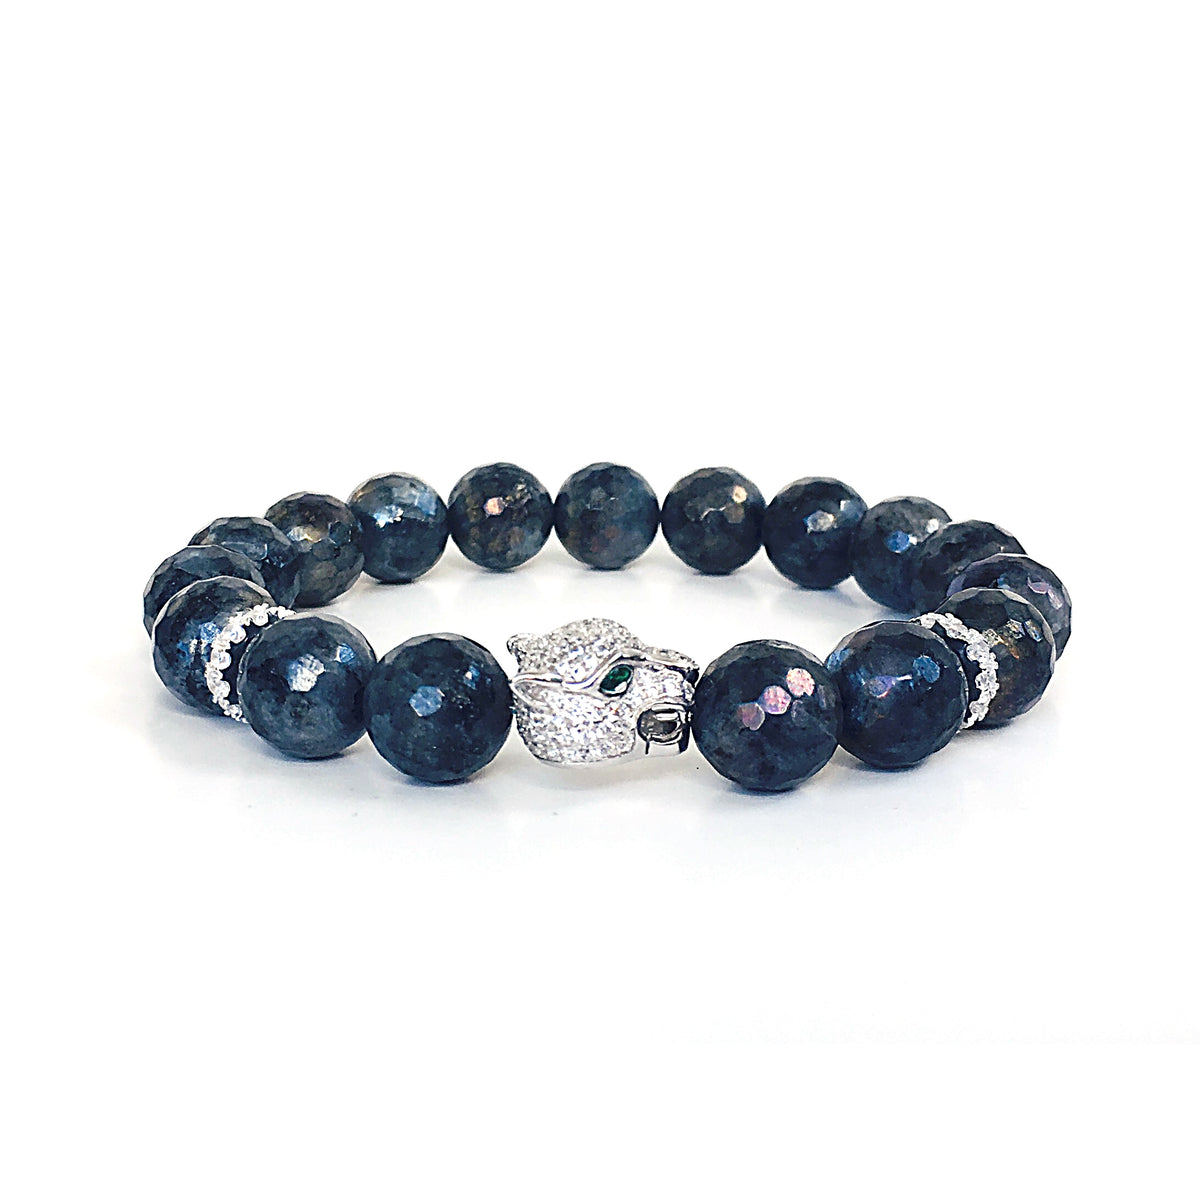 panther fix treskow bracelet products co paloma von vt